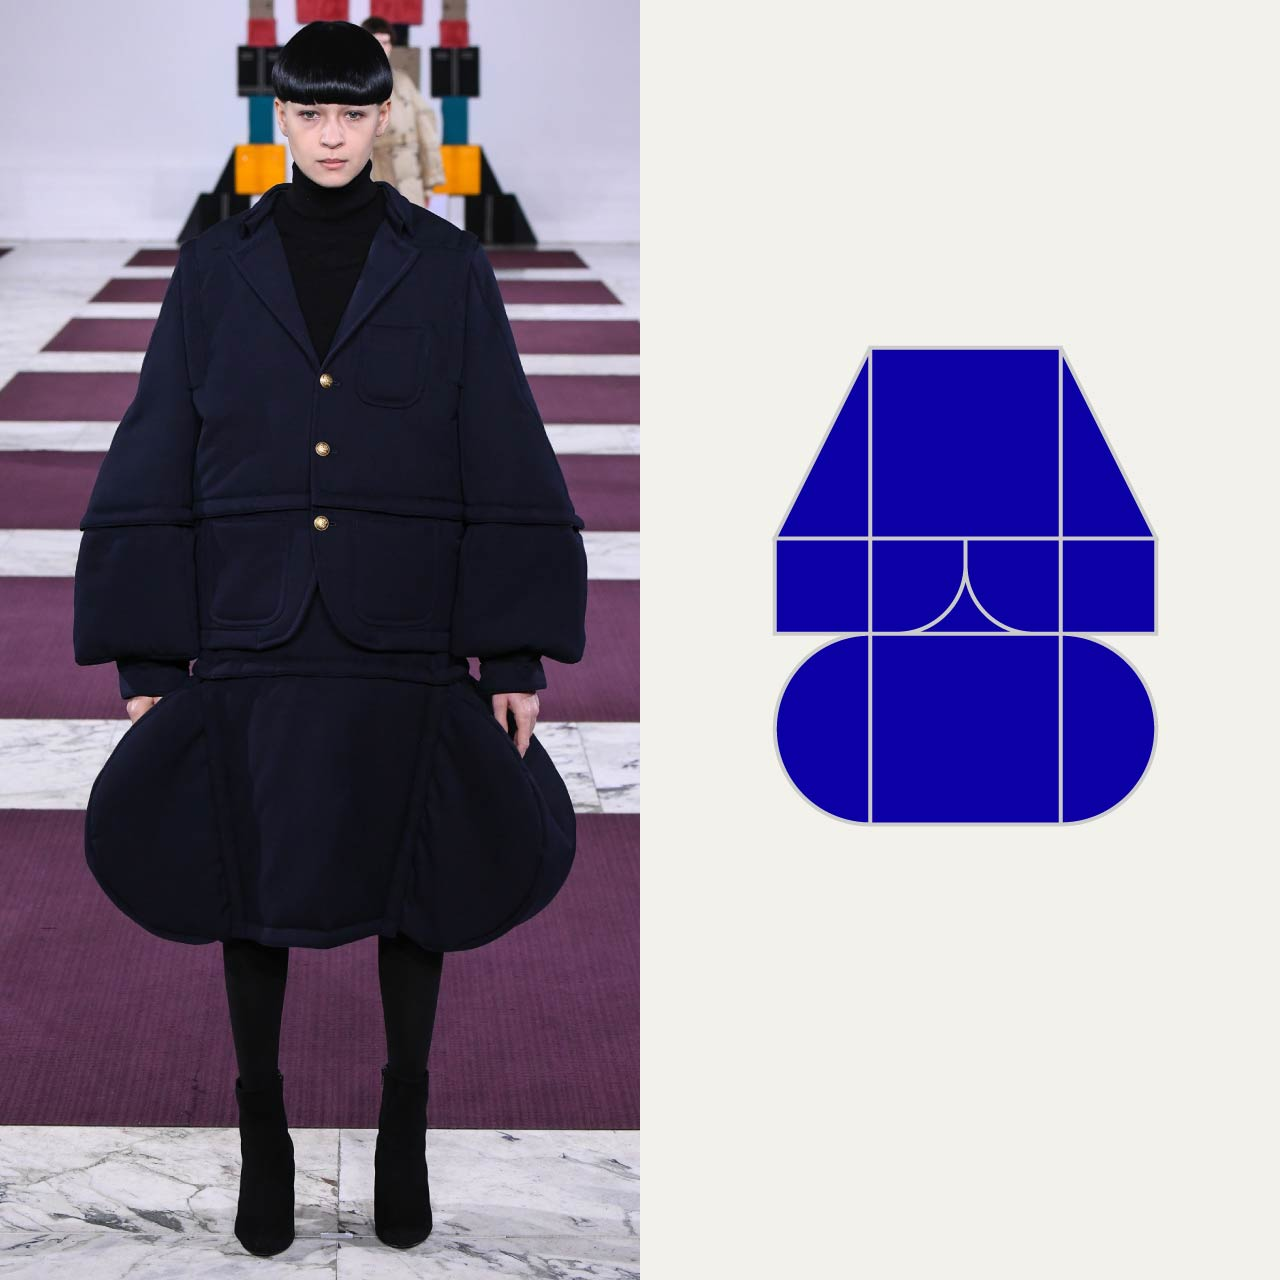 A Modular Anrealage Silhouette Through Blocks | The Cutting Class. Blocks, triangles and semi-circles form the shapes of a jacket and skirt.